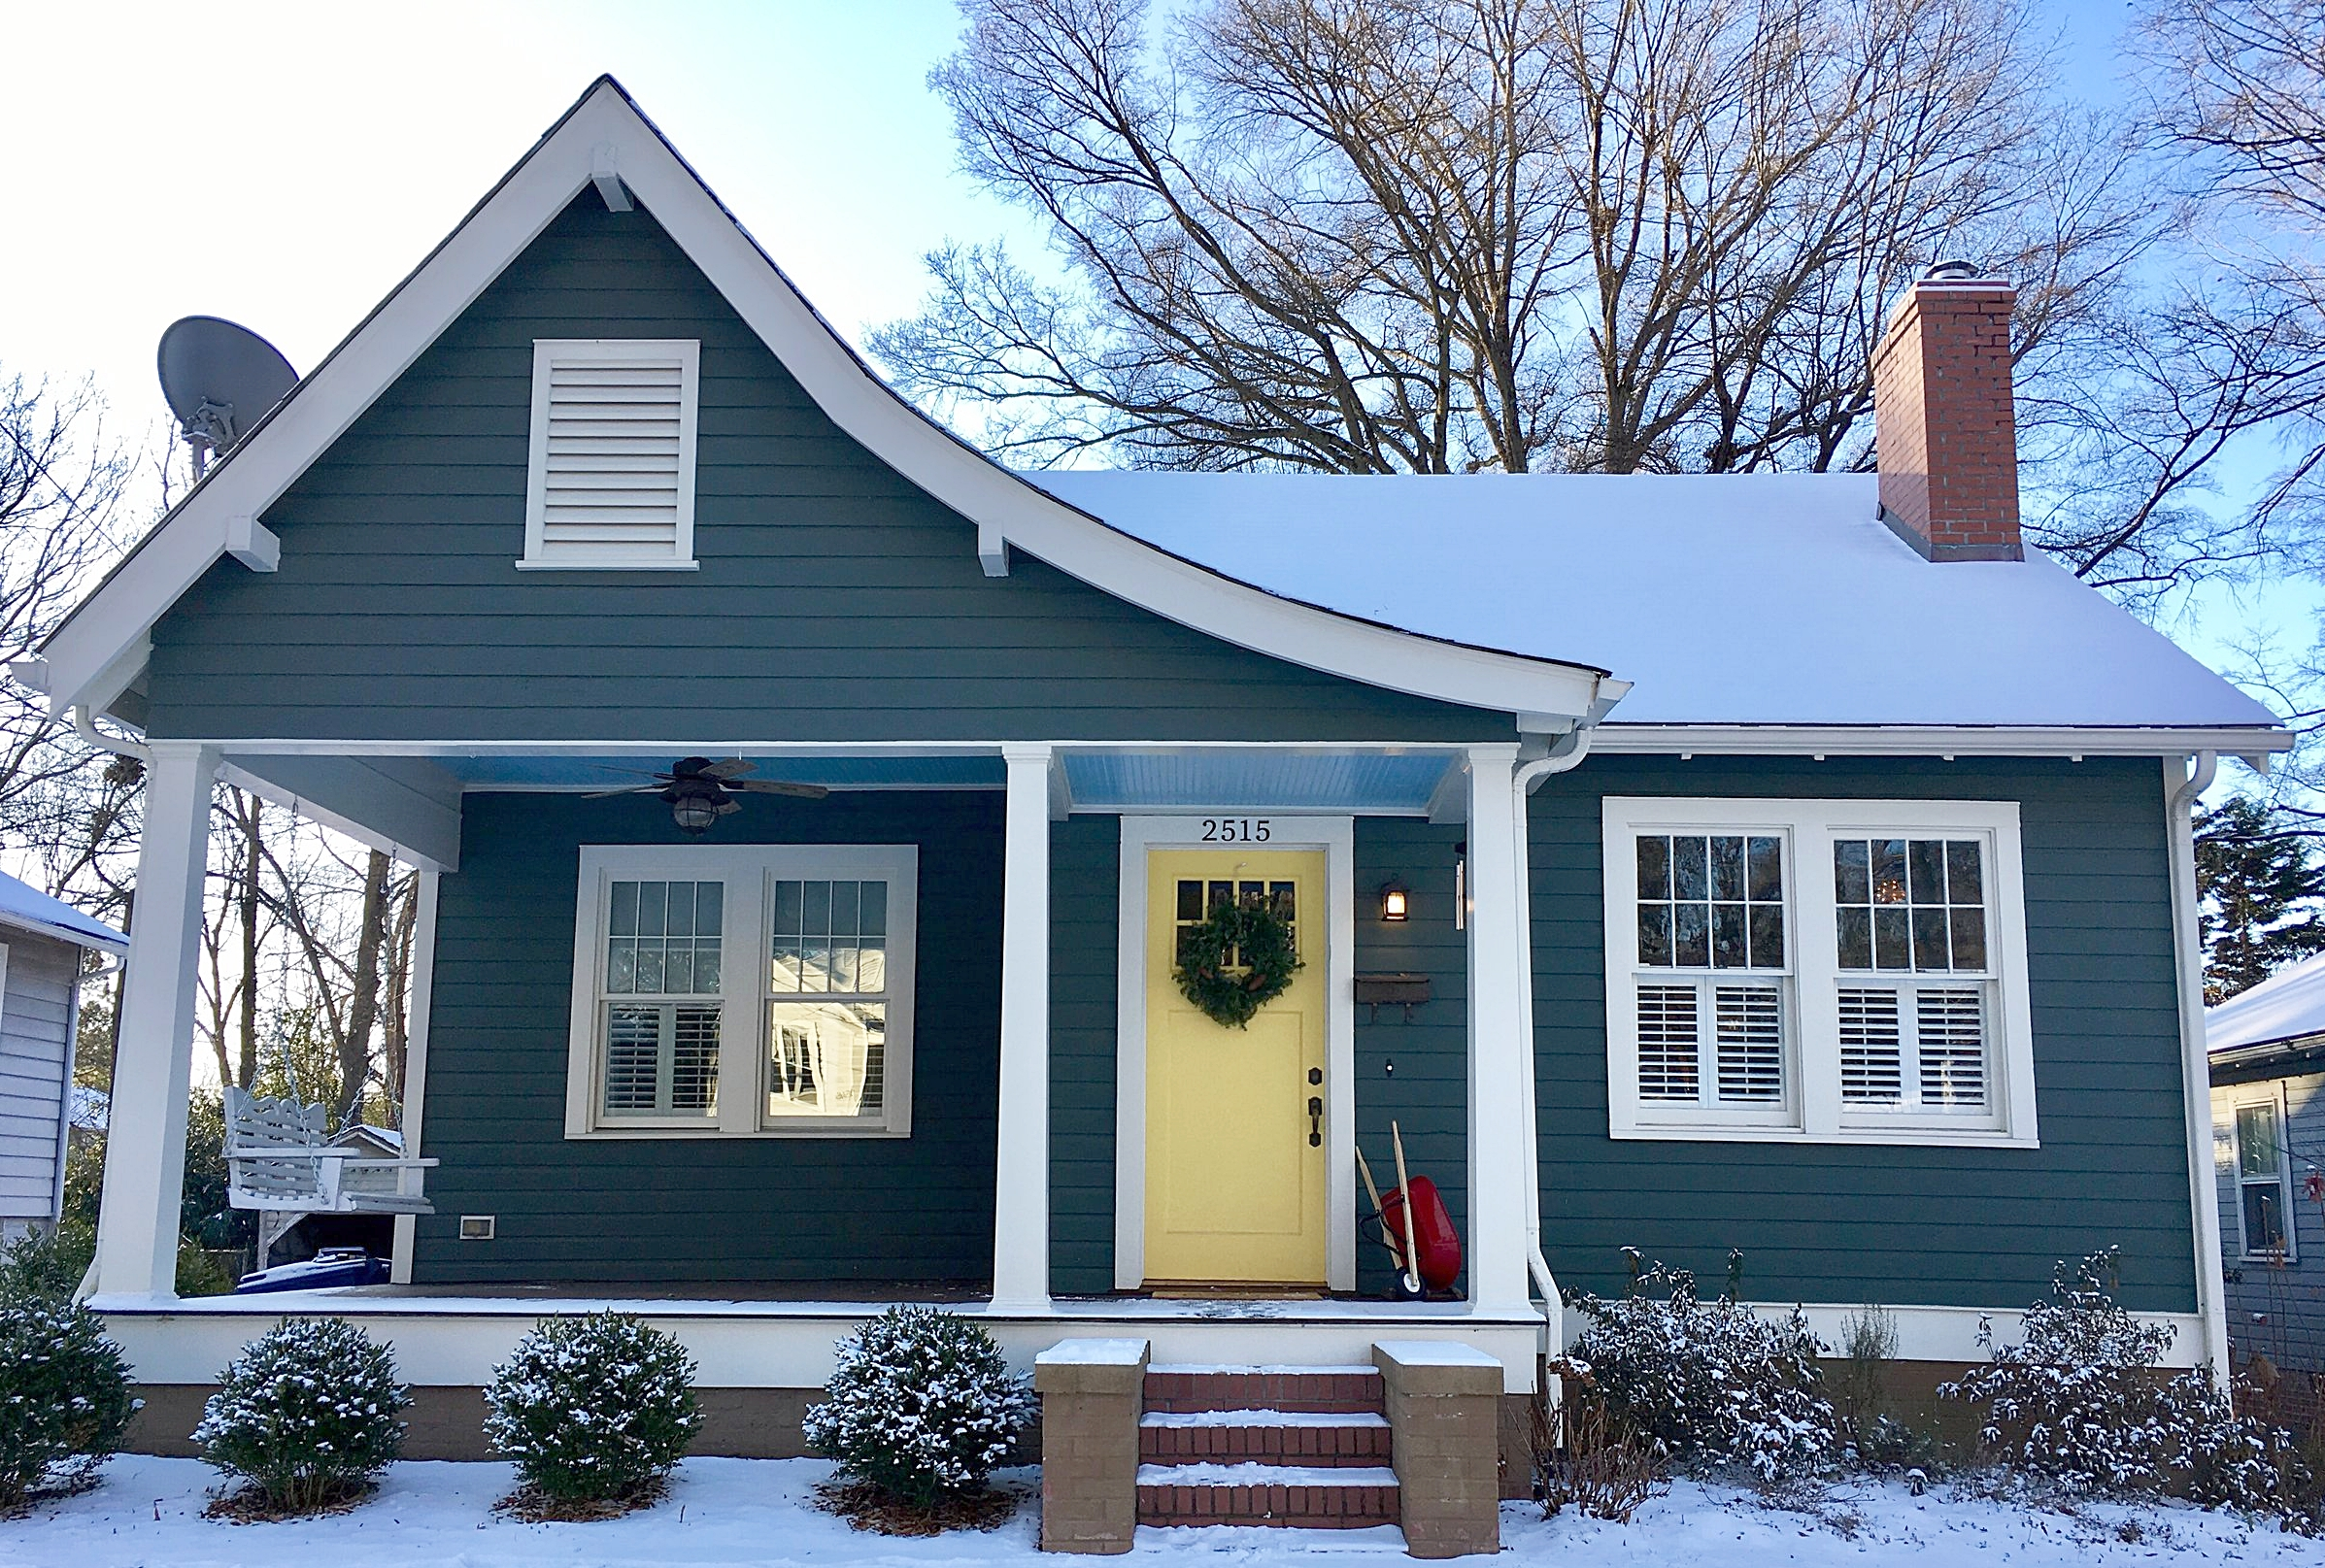 2515 Englewood Avenue: Offers Due 2/5 at 5pm